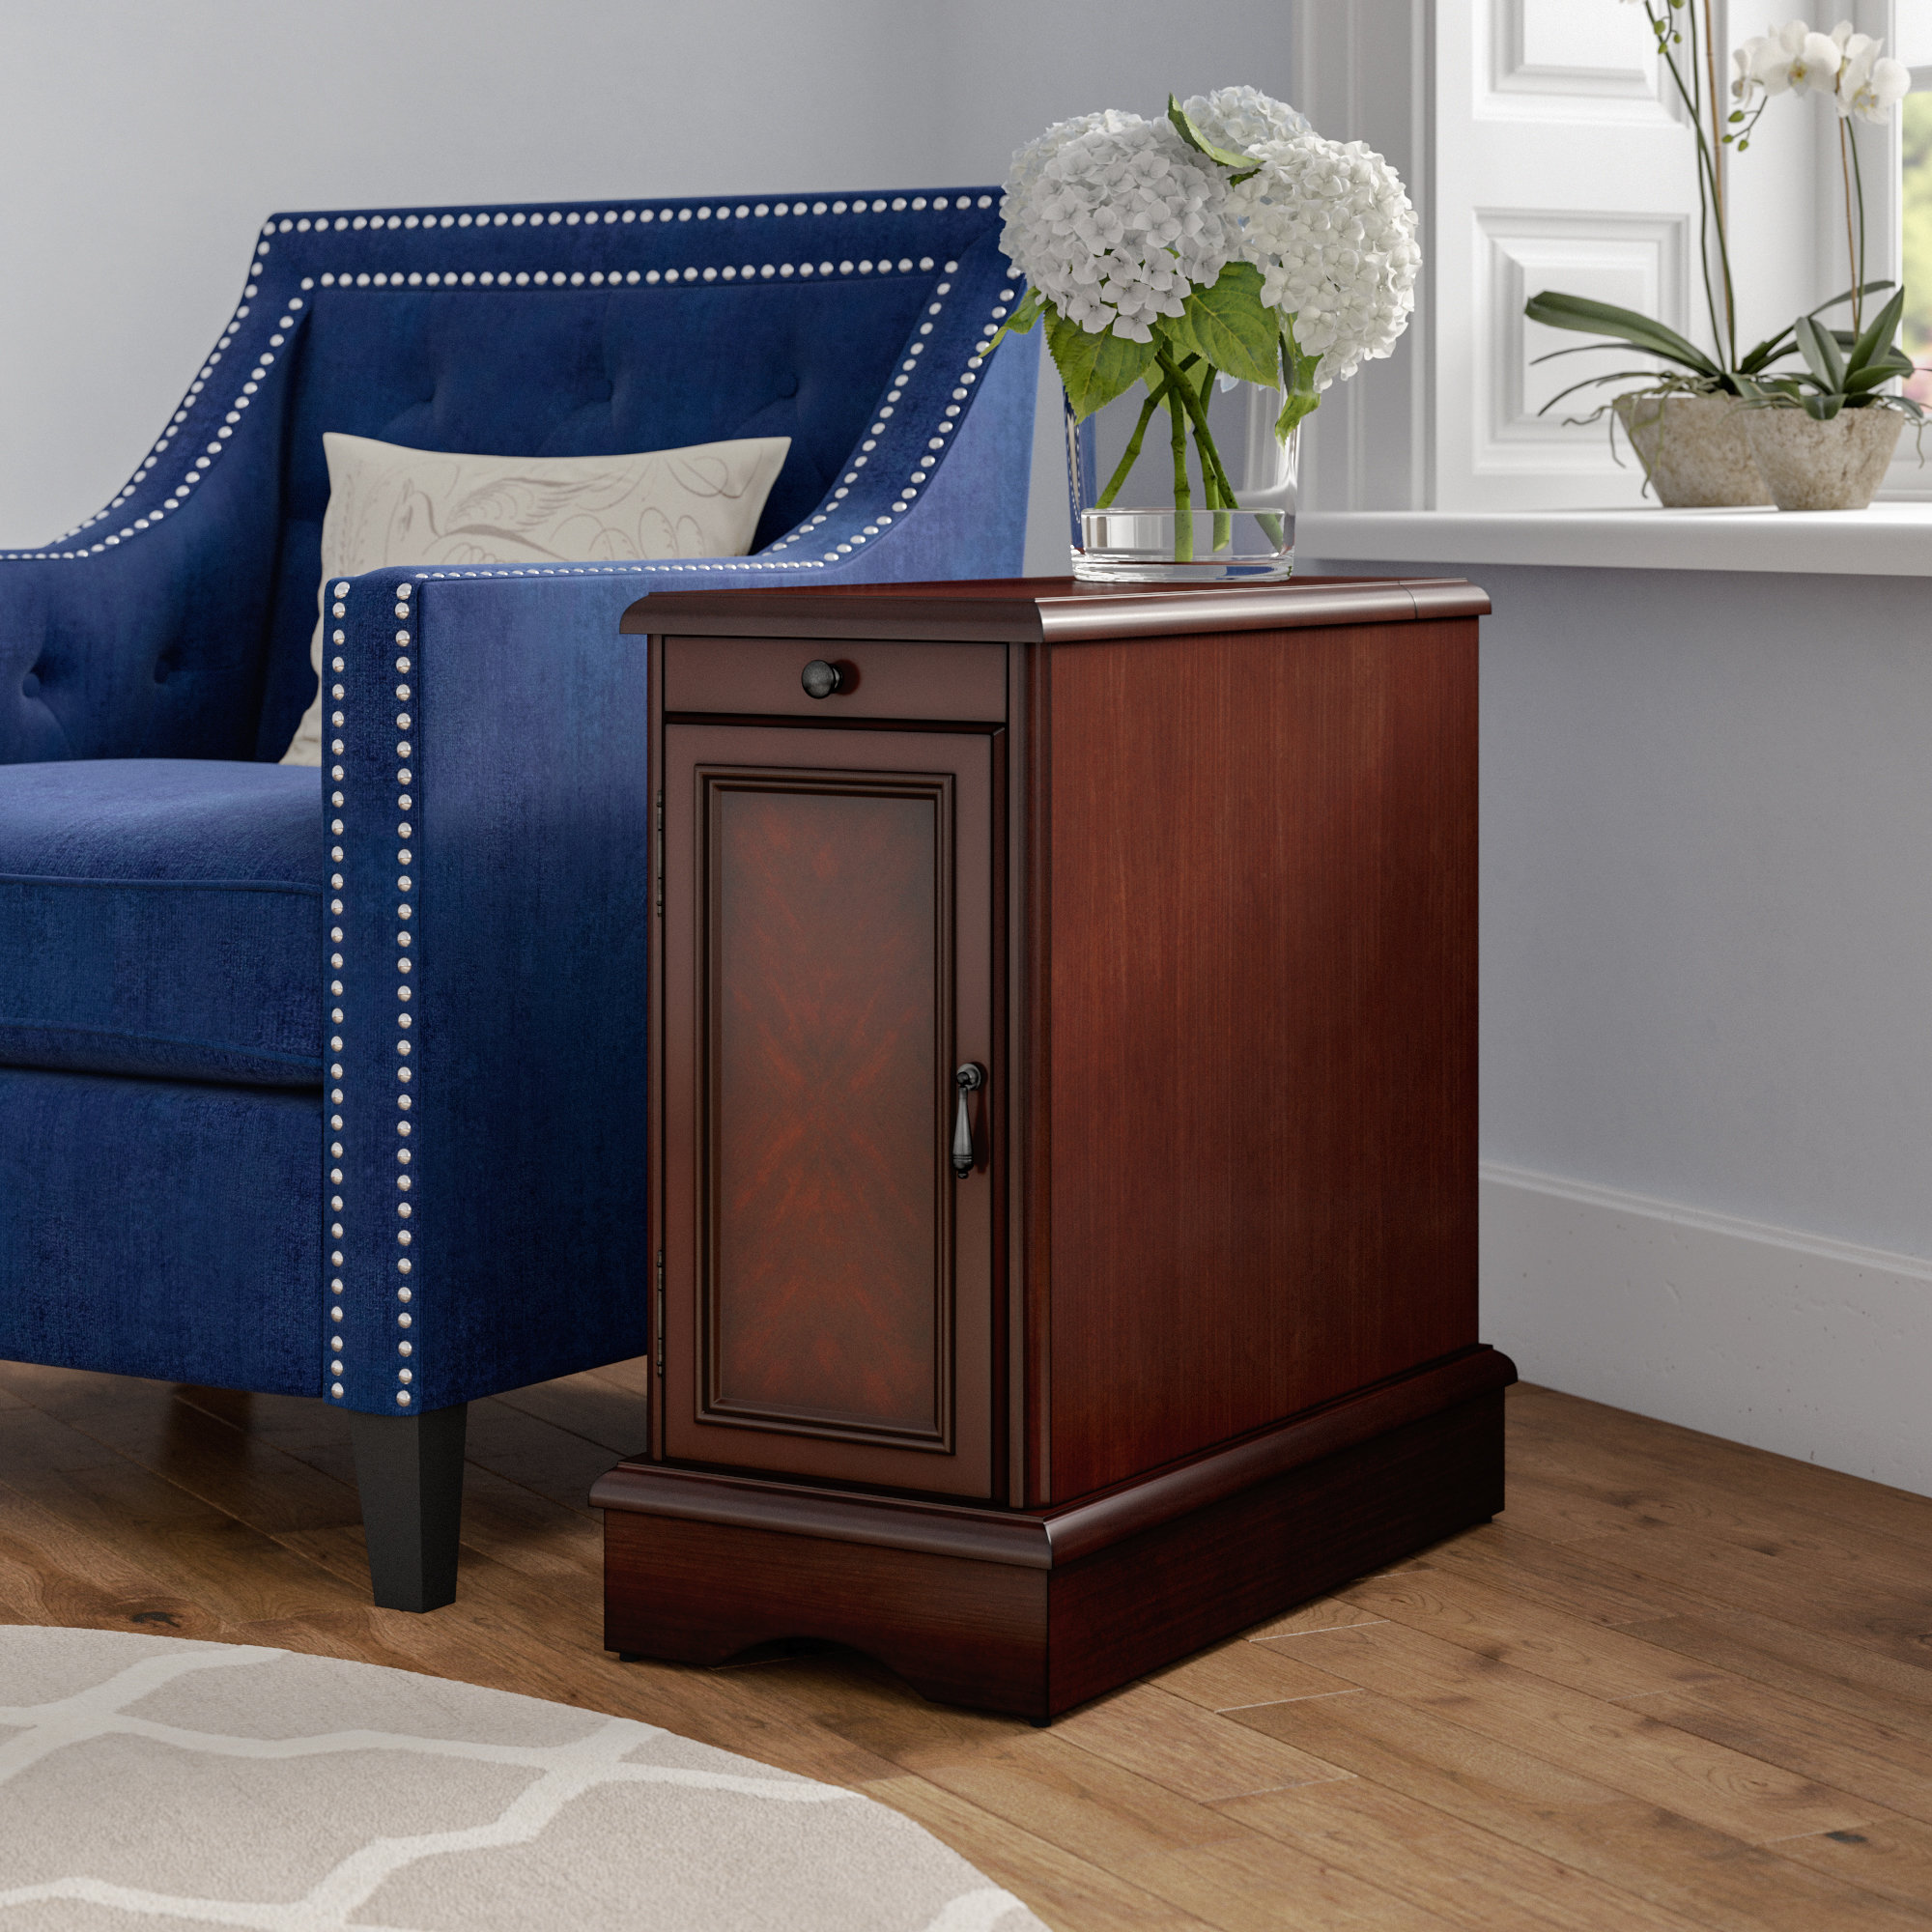 darby home kipling end table with storage reviews accent black room essentials bedside dresser pottery barn pine dining thin coffee hampton bay patio furniture cushions better